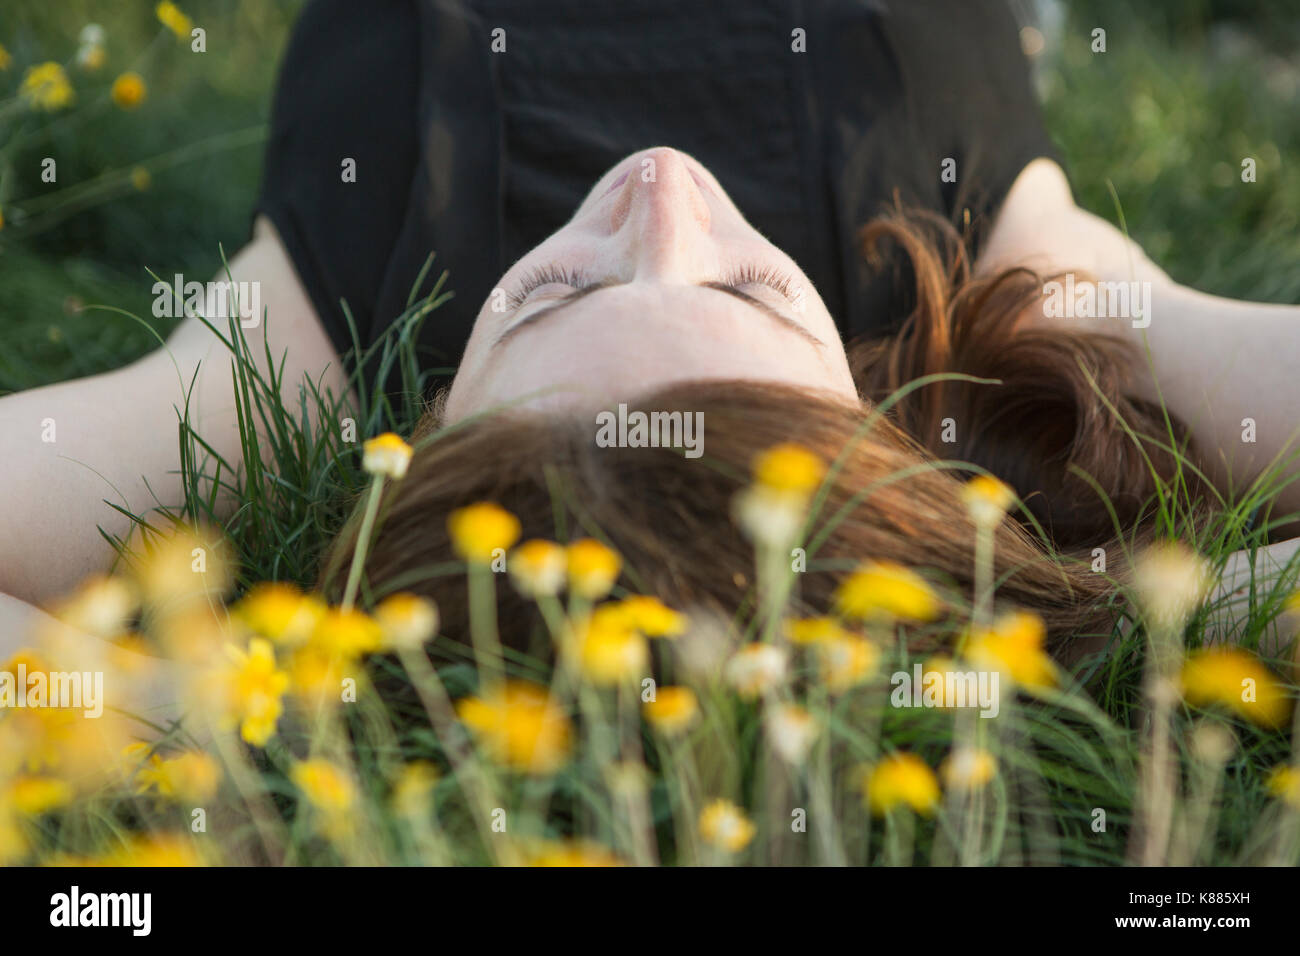 A woman in a black vest top and jeans lying on the grass with her hands behind her head. - Stock Image